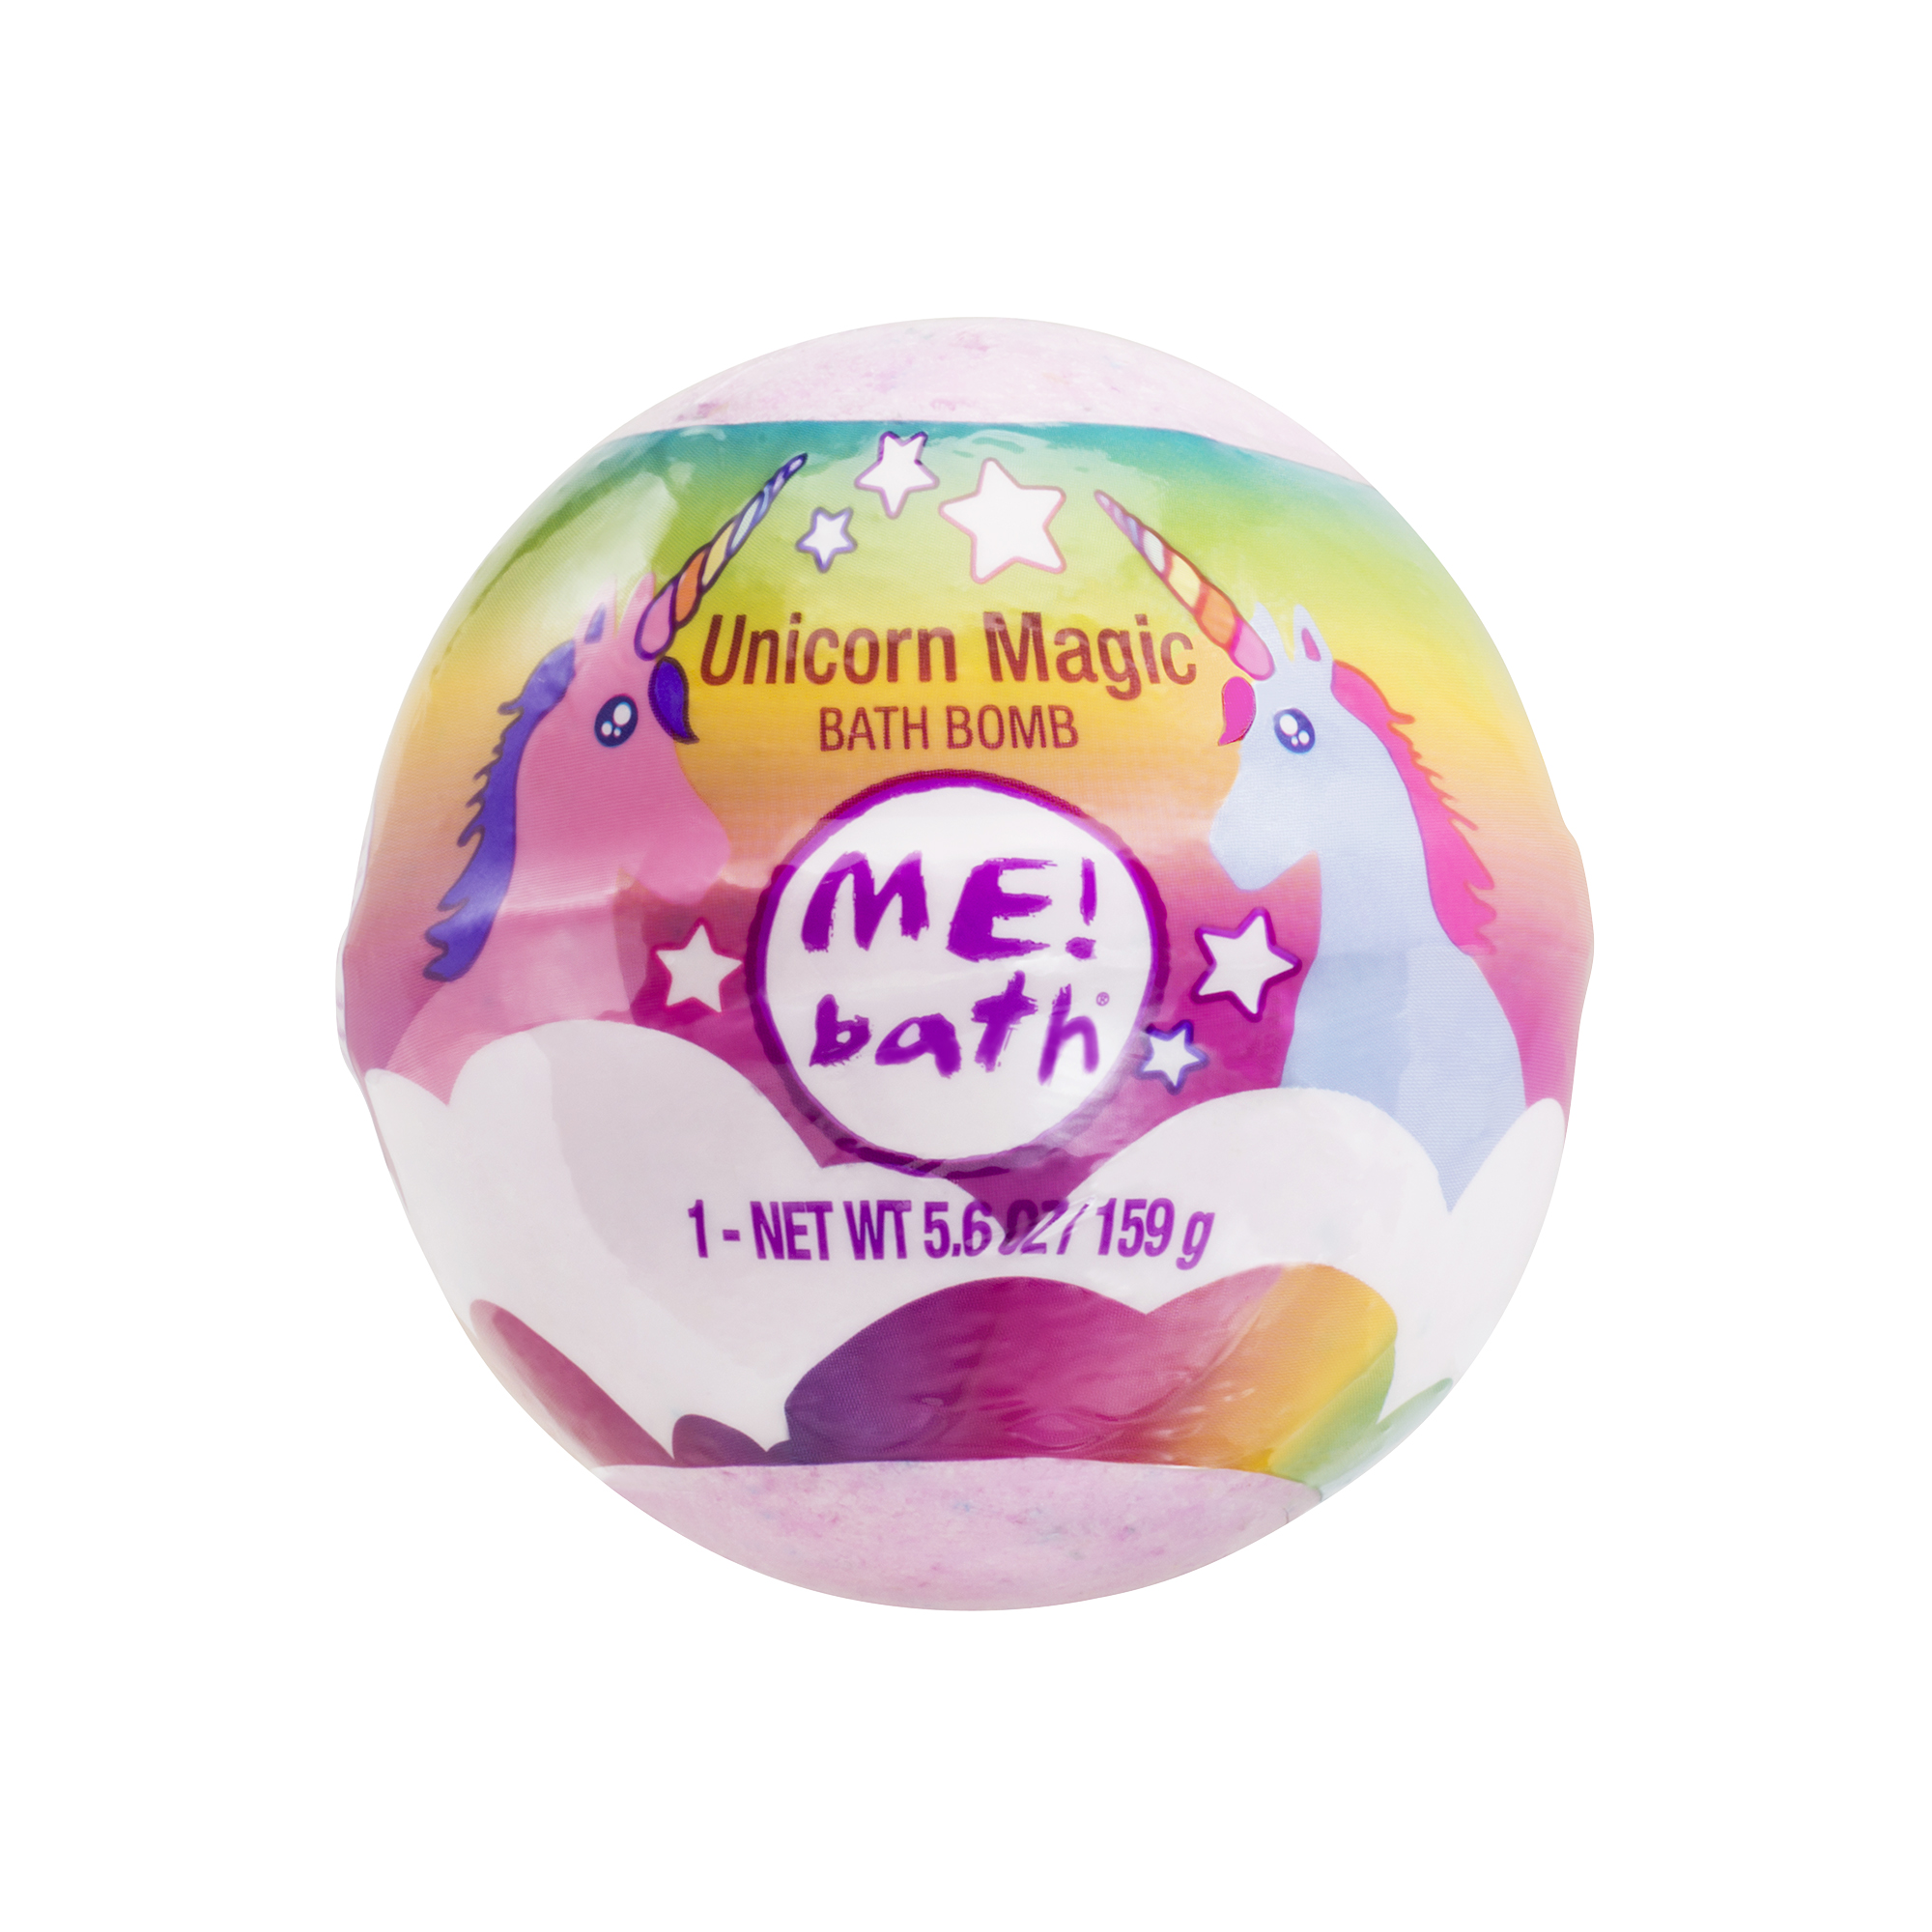 Me Bath Unicorn Magic Bath Bomb, 5.6 oz.